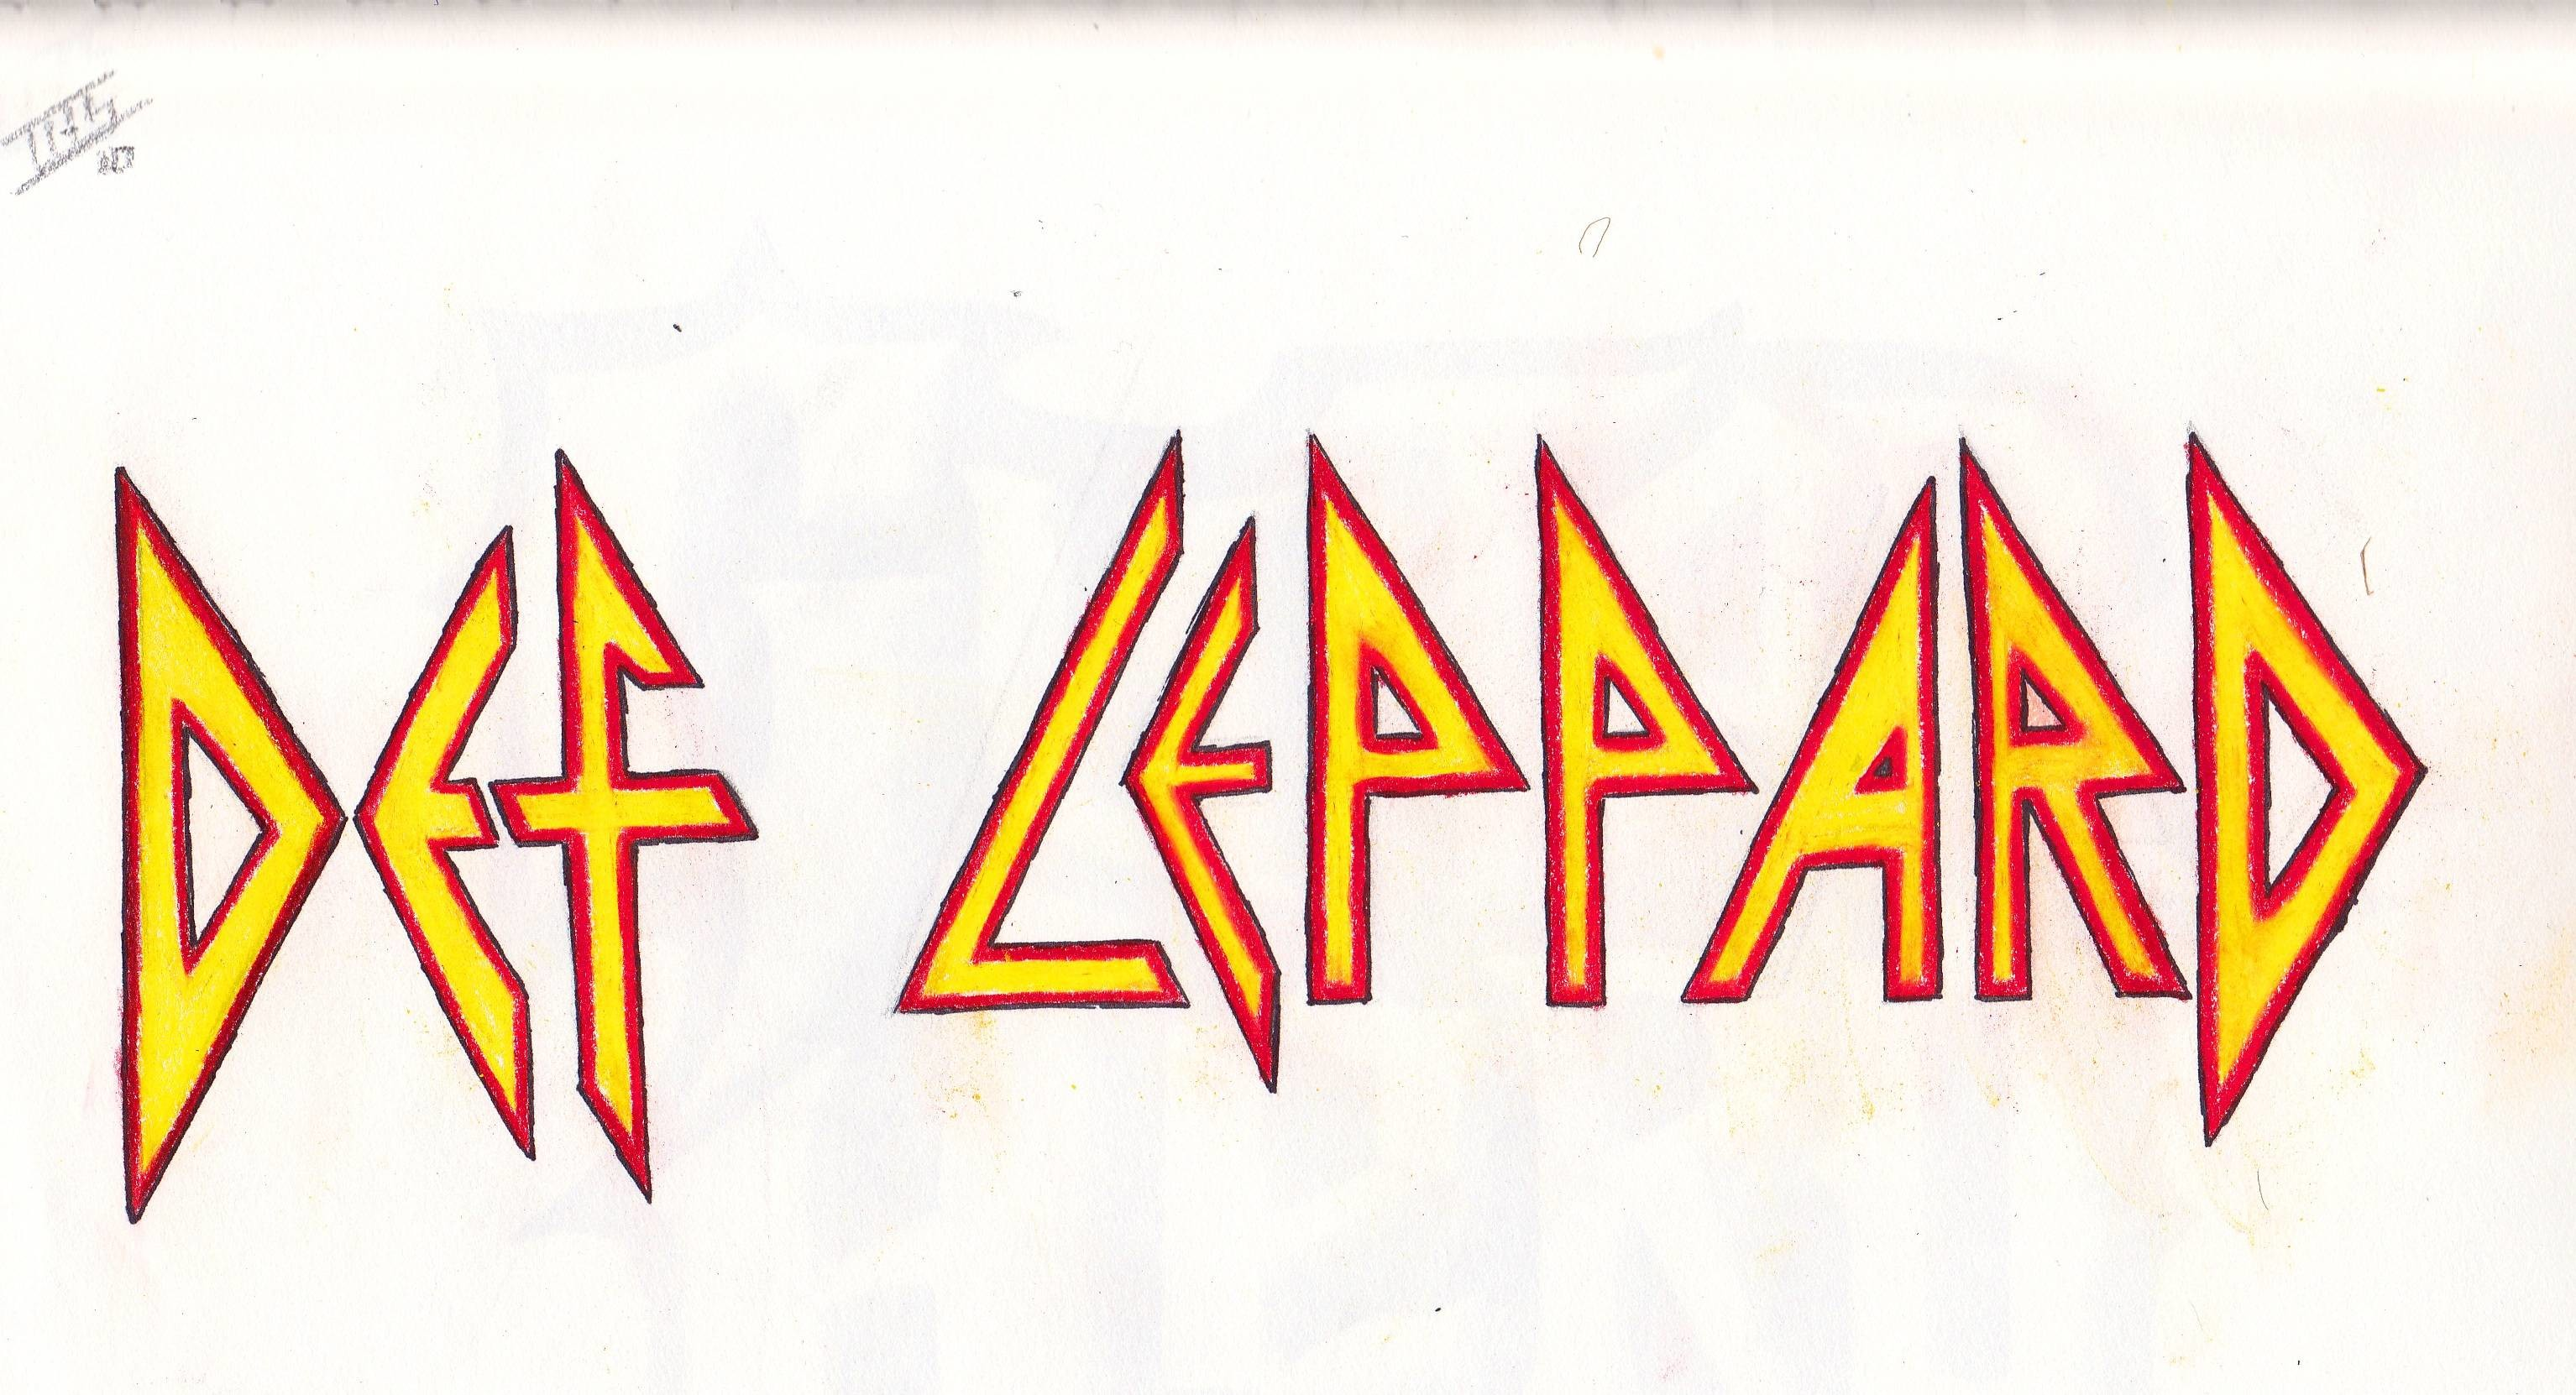 3068x1662 Filename: 0y5djX7.jpg · view image. Found on: def-leppard-wallpaper